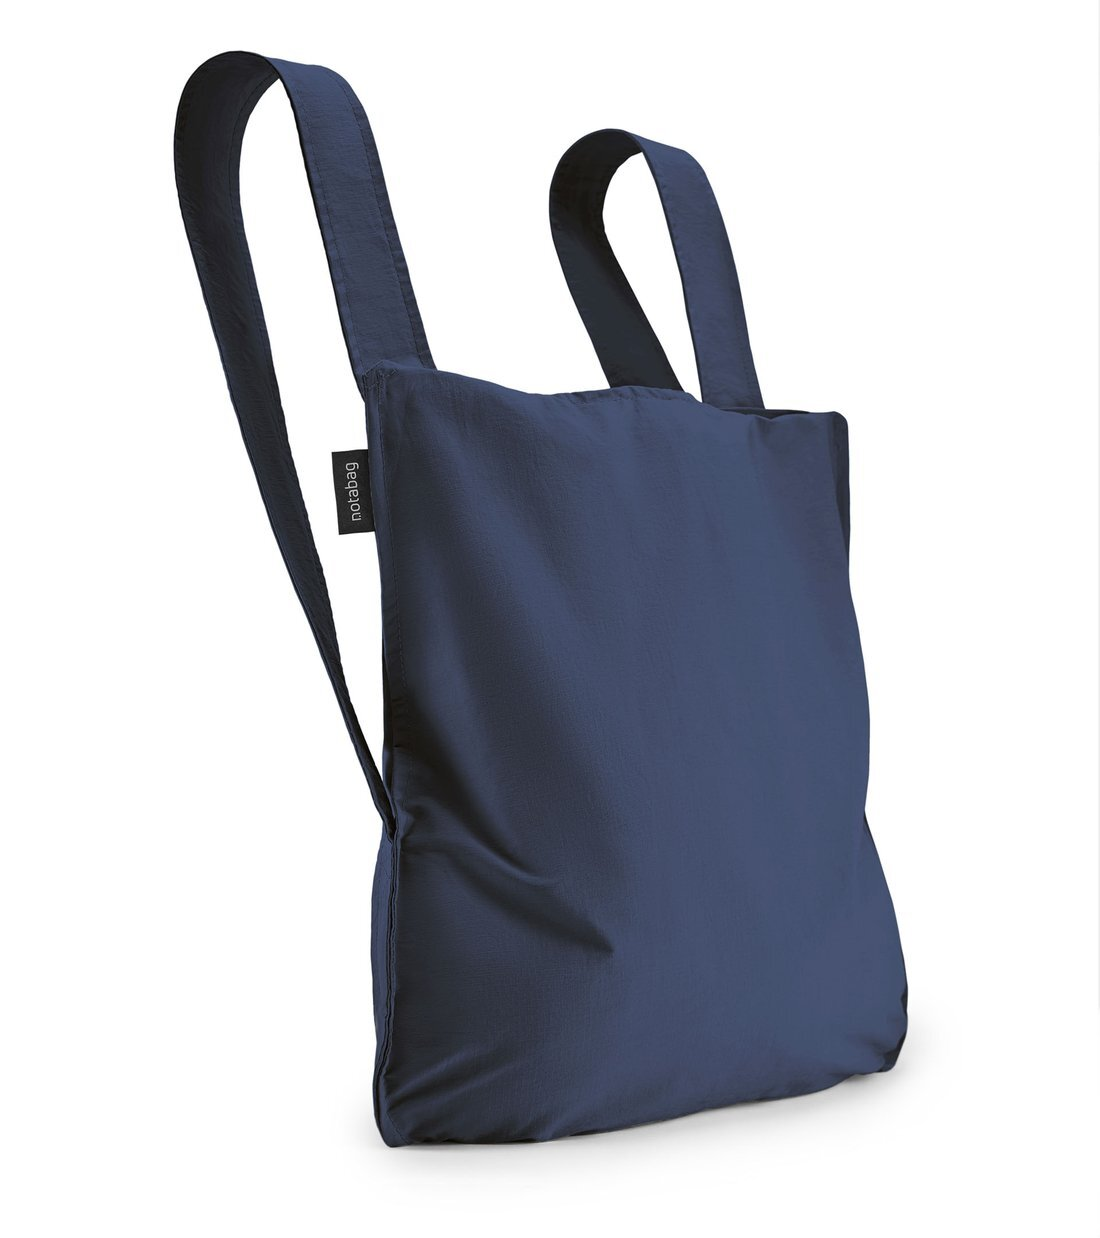 NOTABAG-Navy-Blue-02.jpg